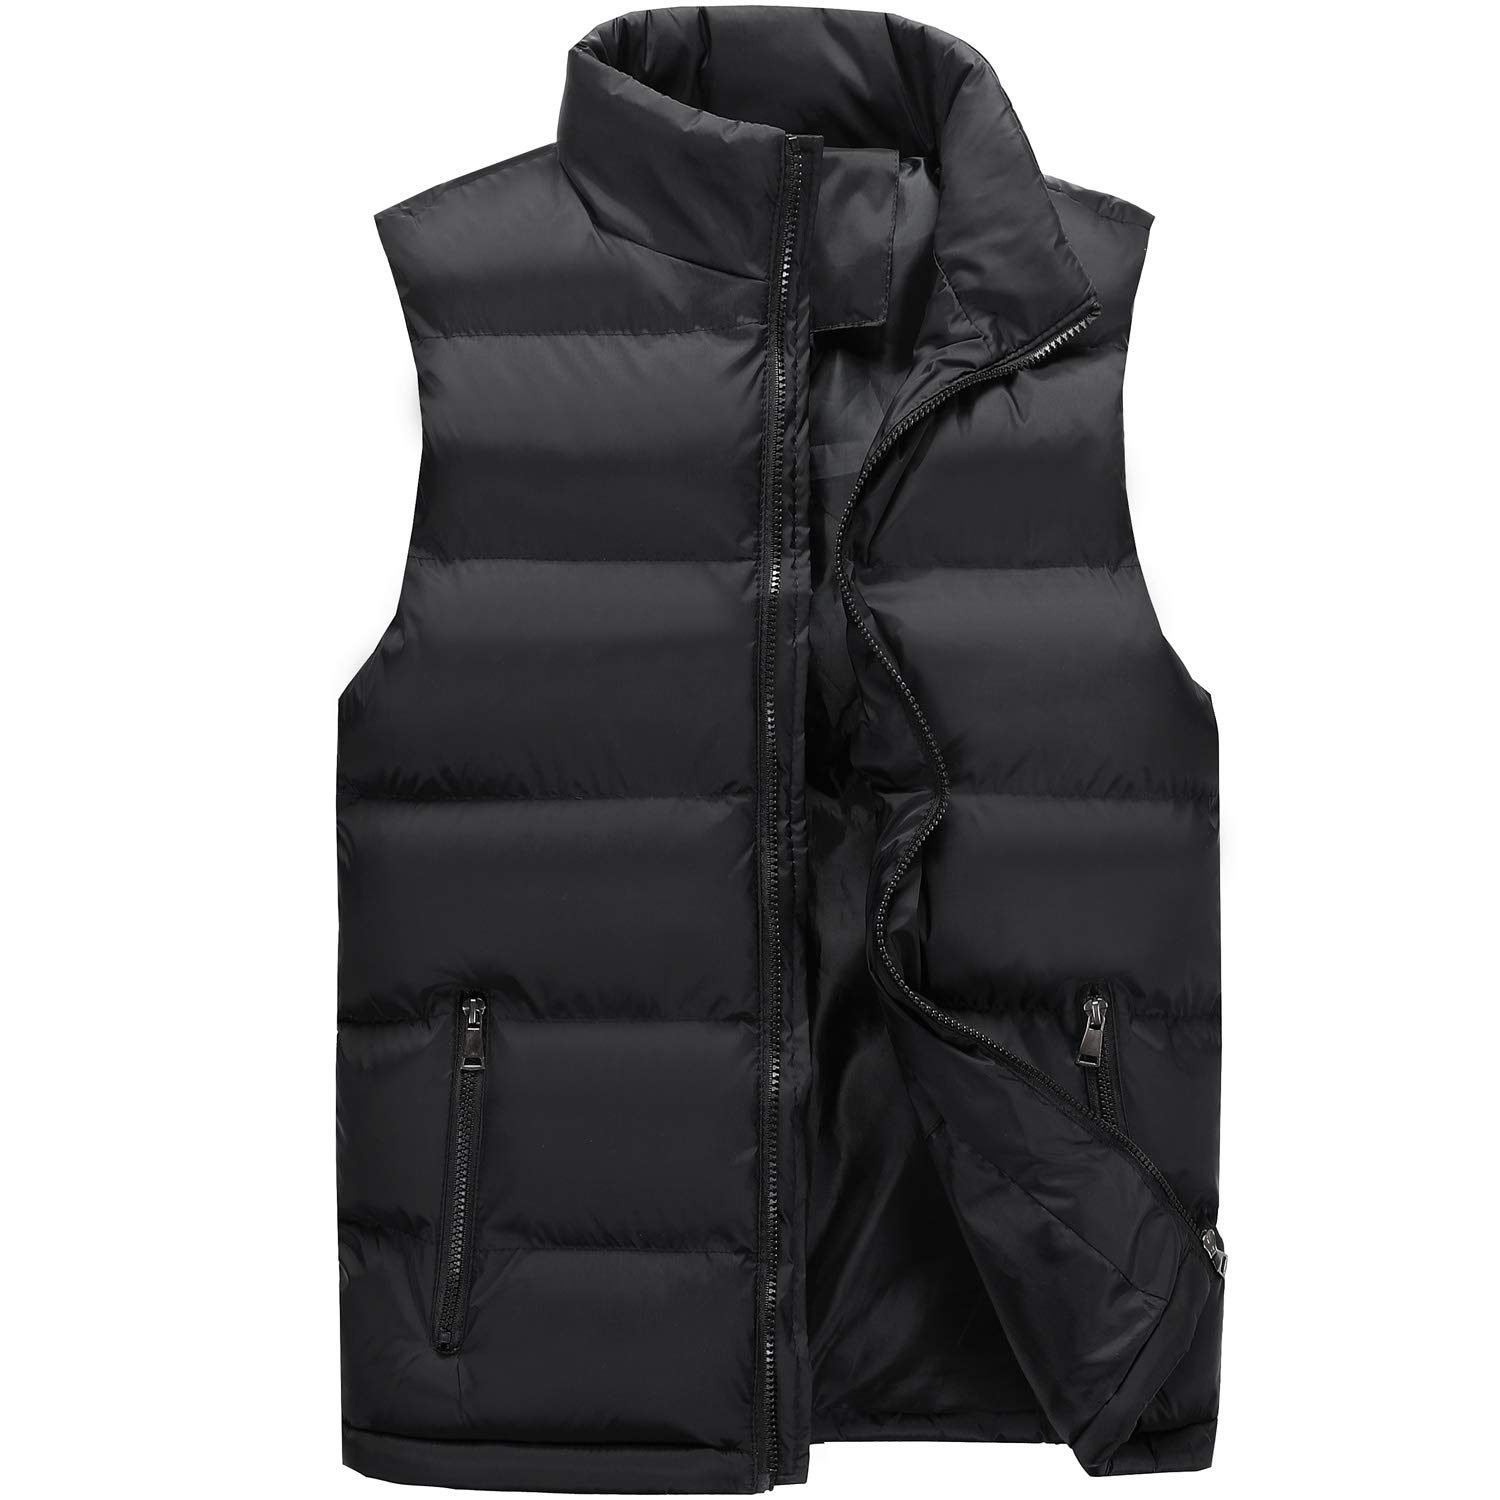 Down Puffer Vest Men Zipper Pockets Inside Pockets Lightweight Jacket Warmer in Winter